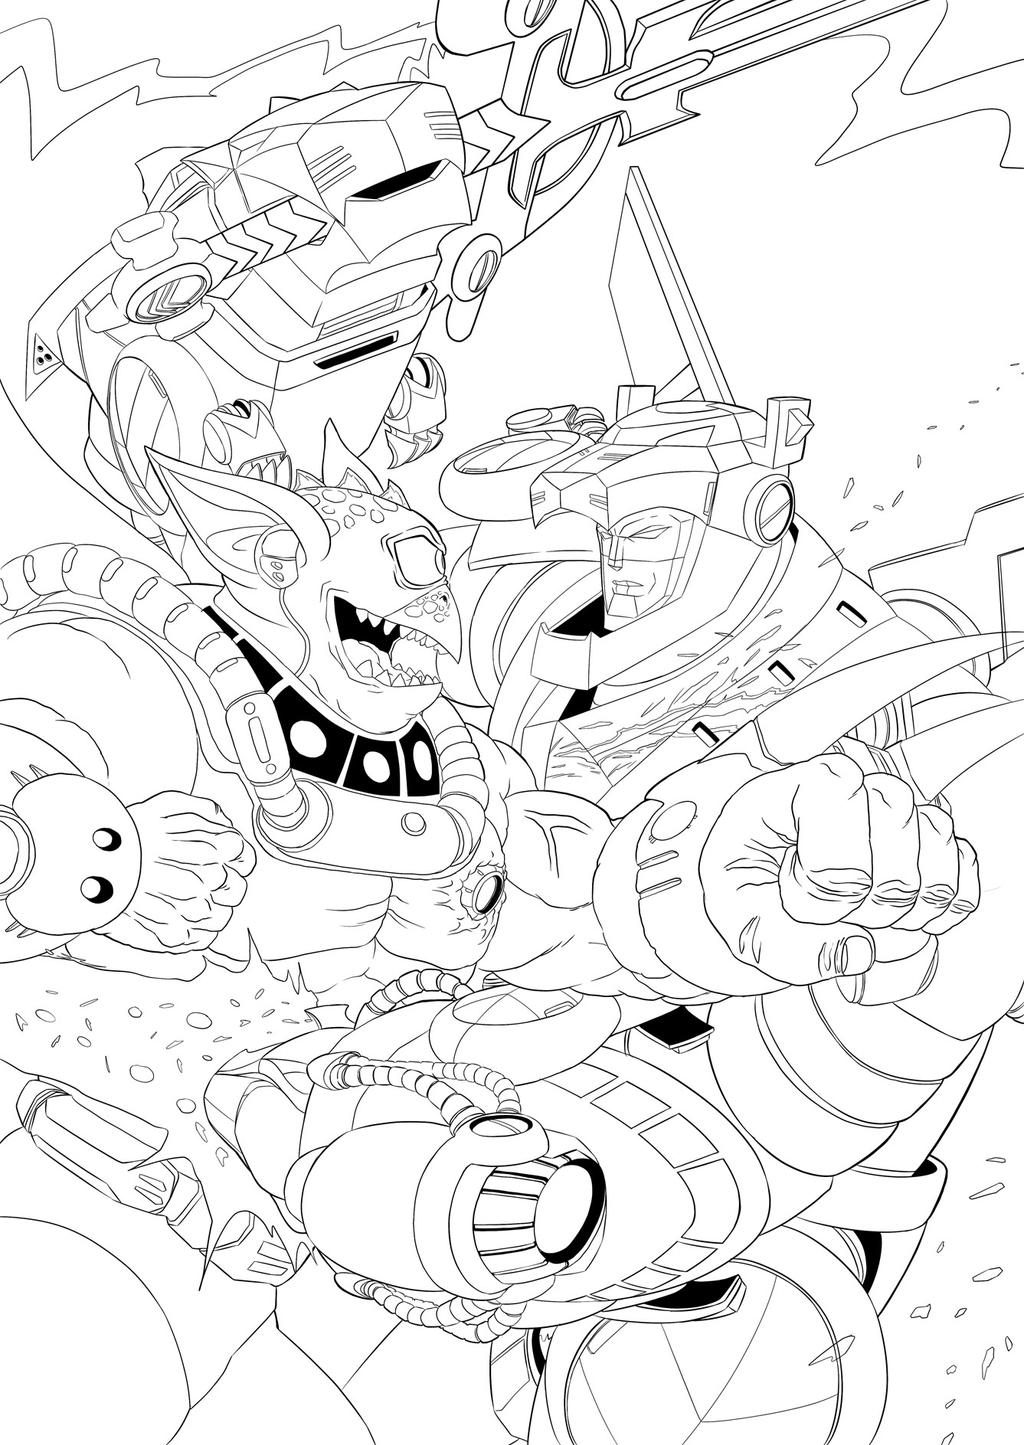 Voltron force cover ink by ultrachicken on deviantart for Voltron coloring pages free